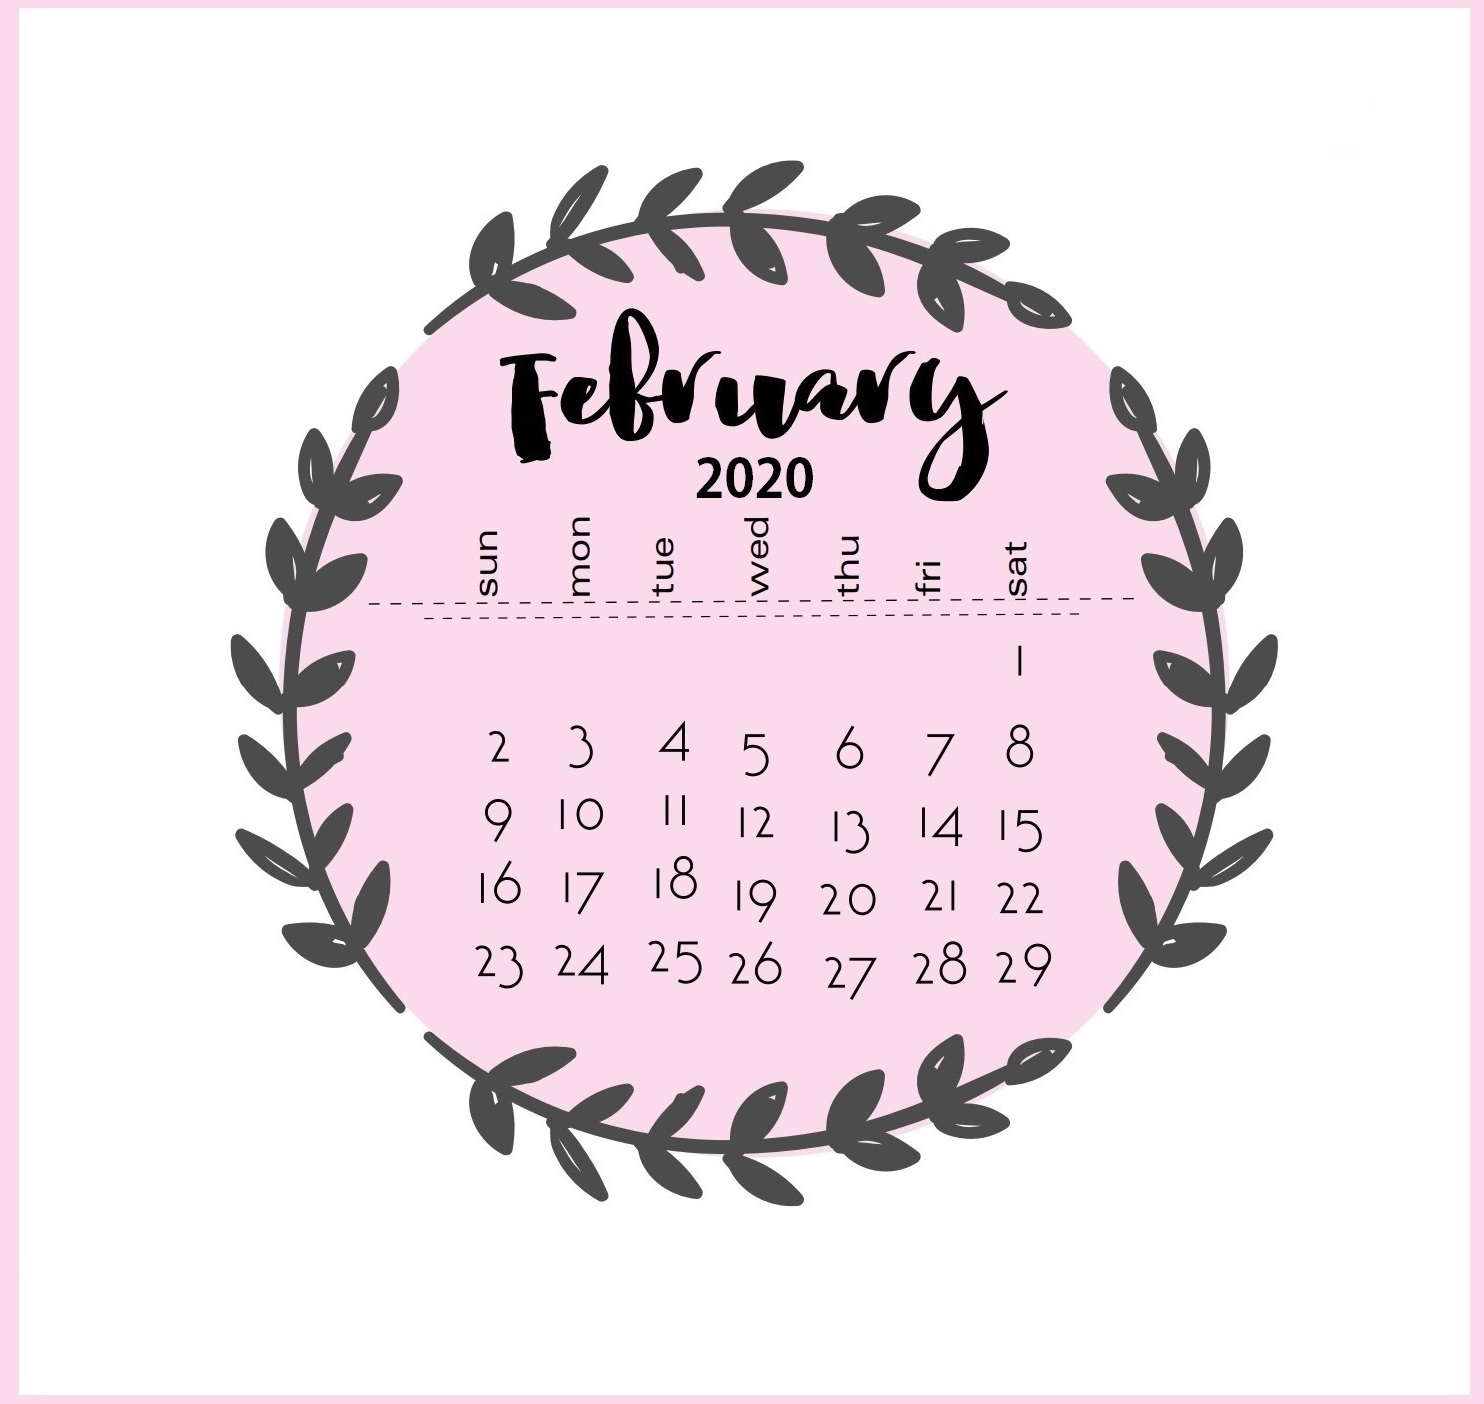 Beautiful February 2020 Calendar